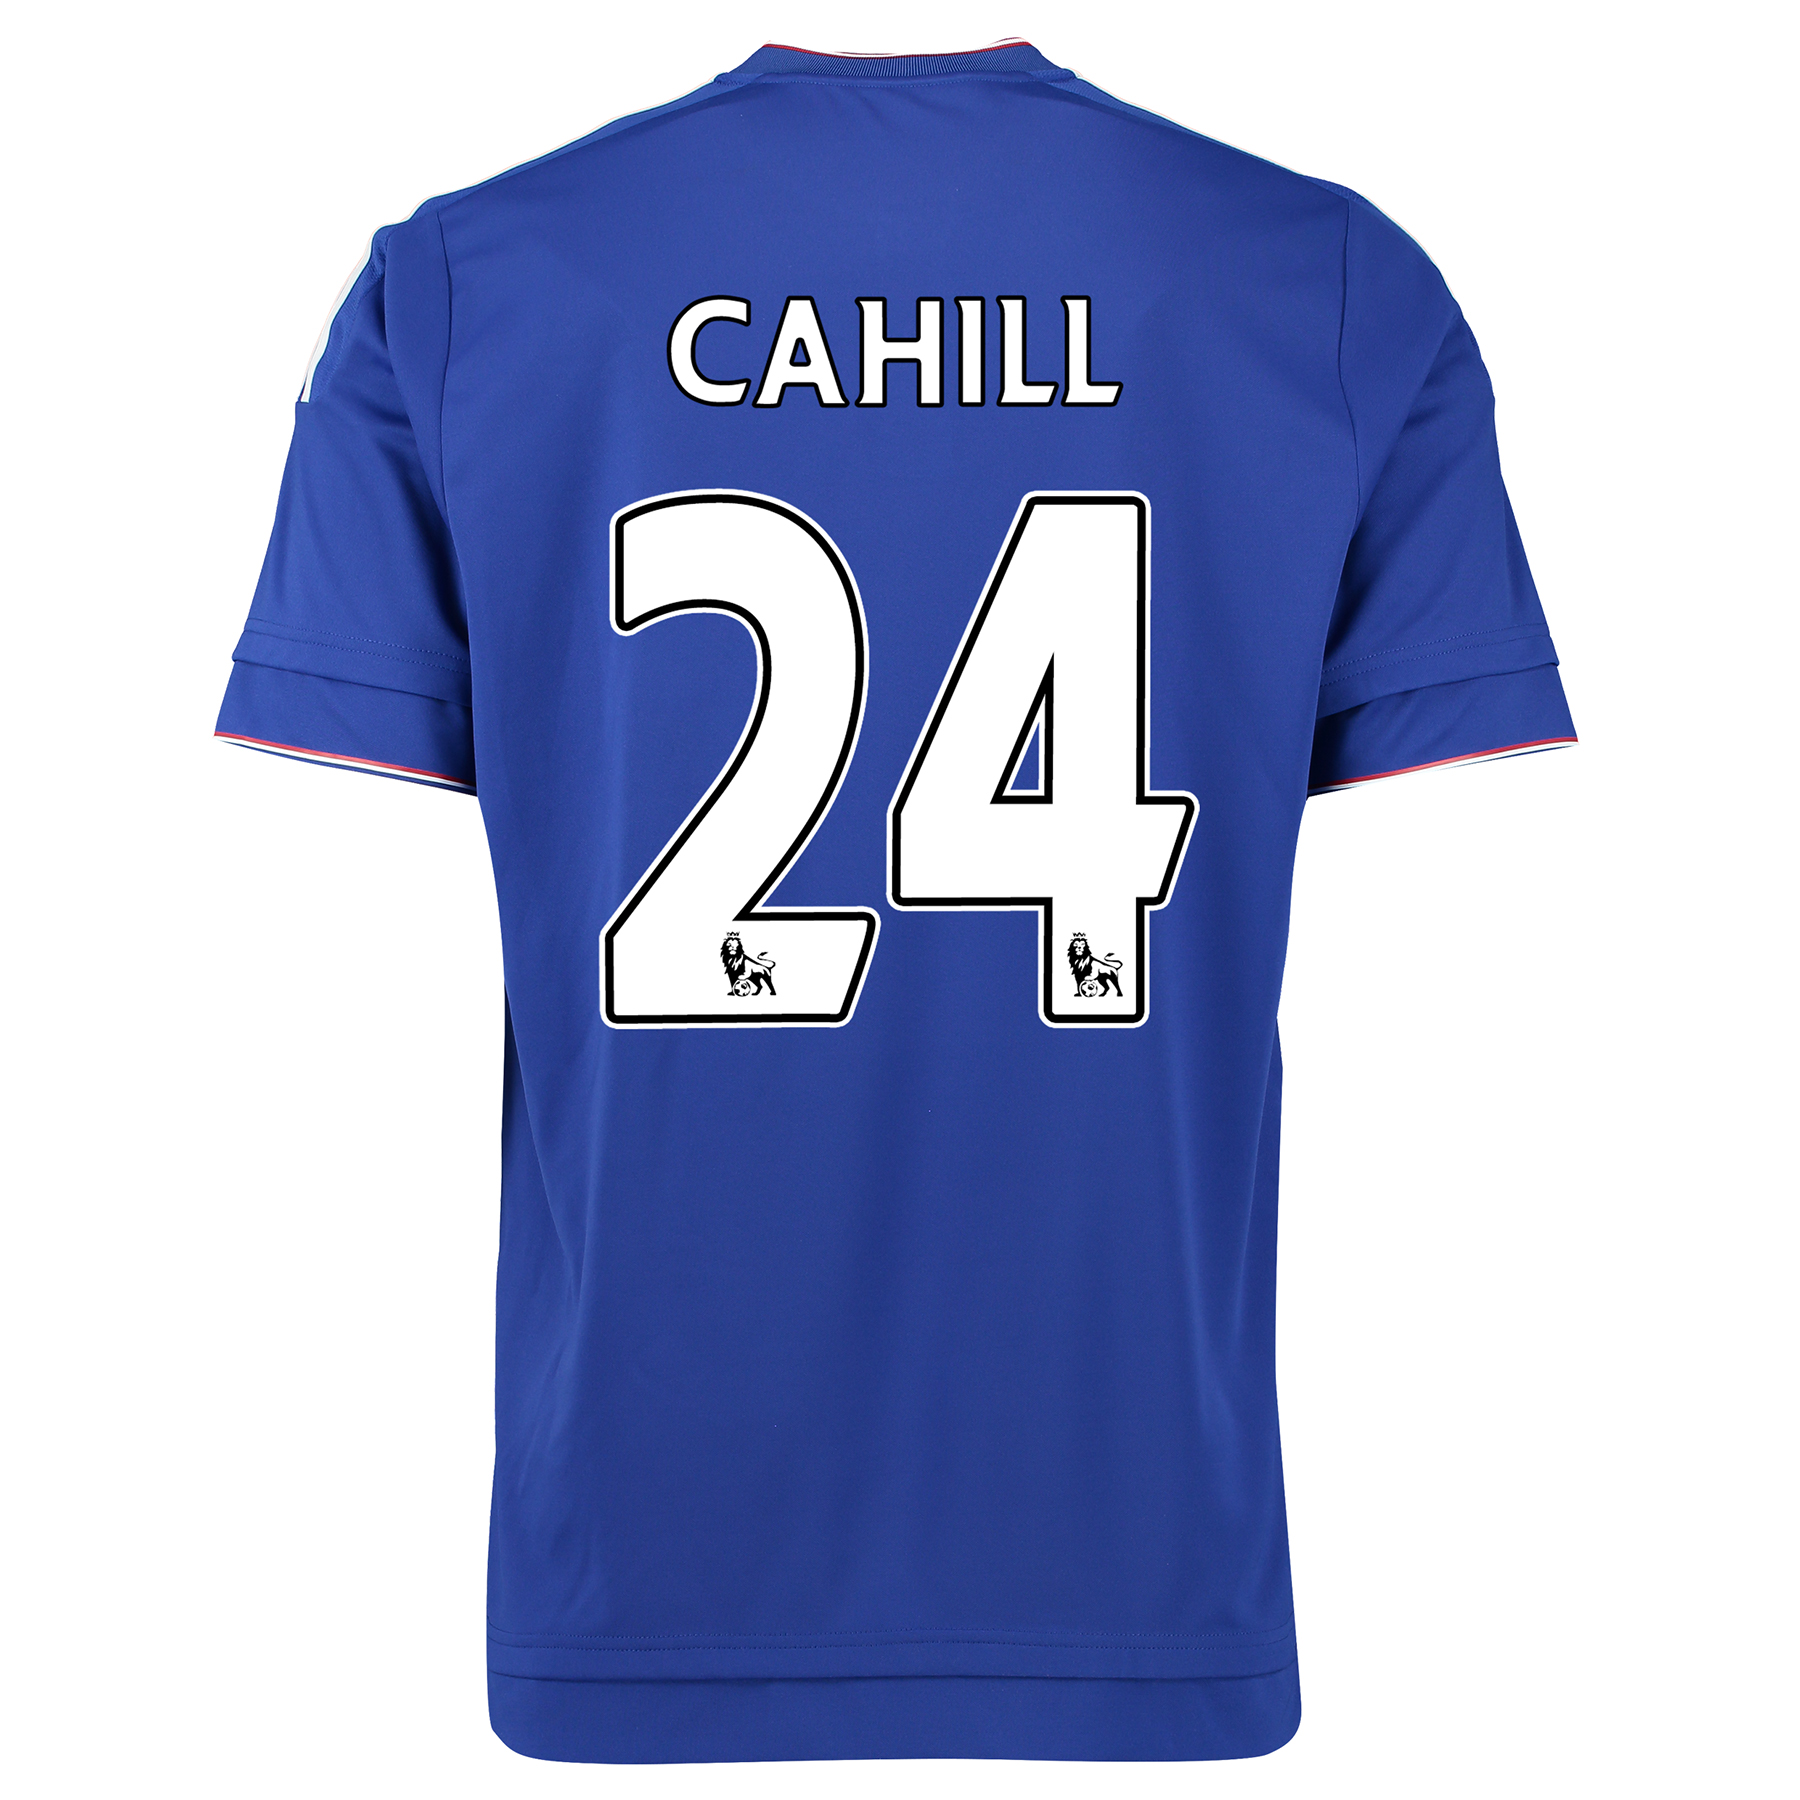 Chelsea Home Shirt 2015/16 Kids Blue with Cahill 24 printing